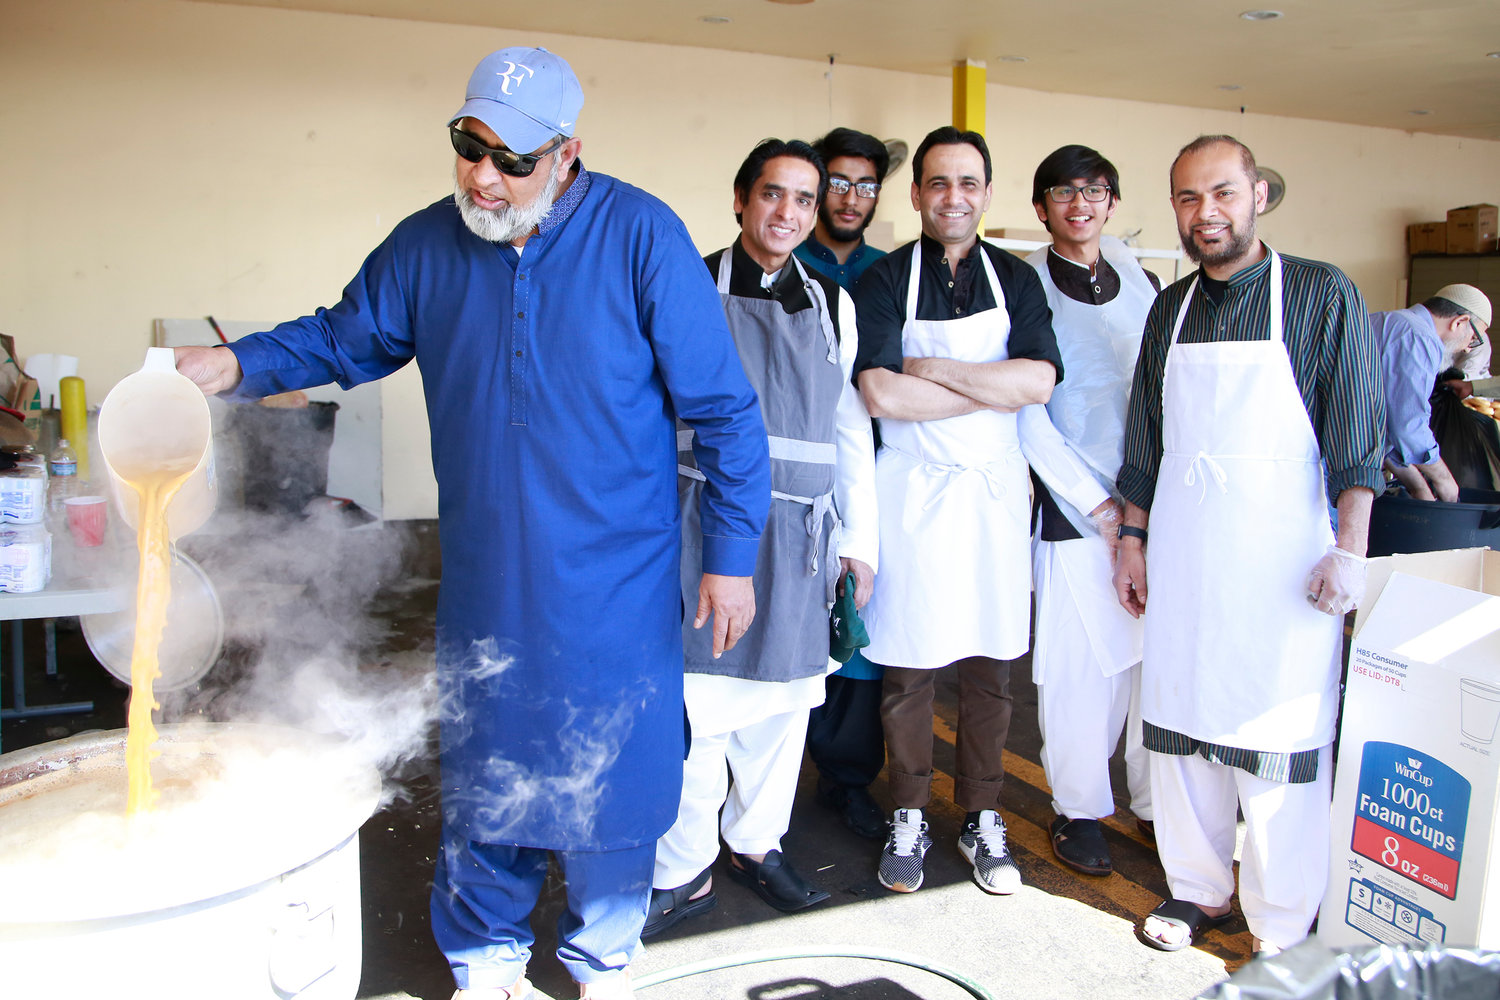 Abdoul Hameed made a special chai tea with, from left, Adnan Khan, Qumar Din, Imran Farooq, Omar Khan and Syed Riswan.